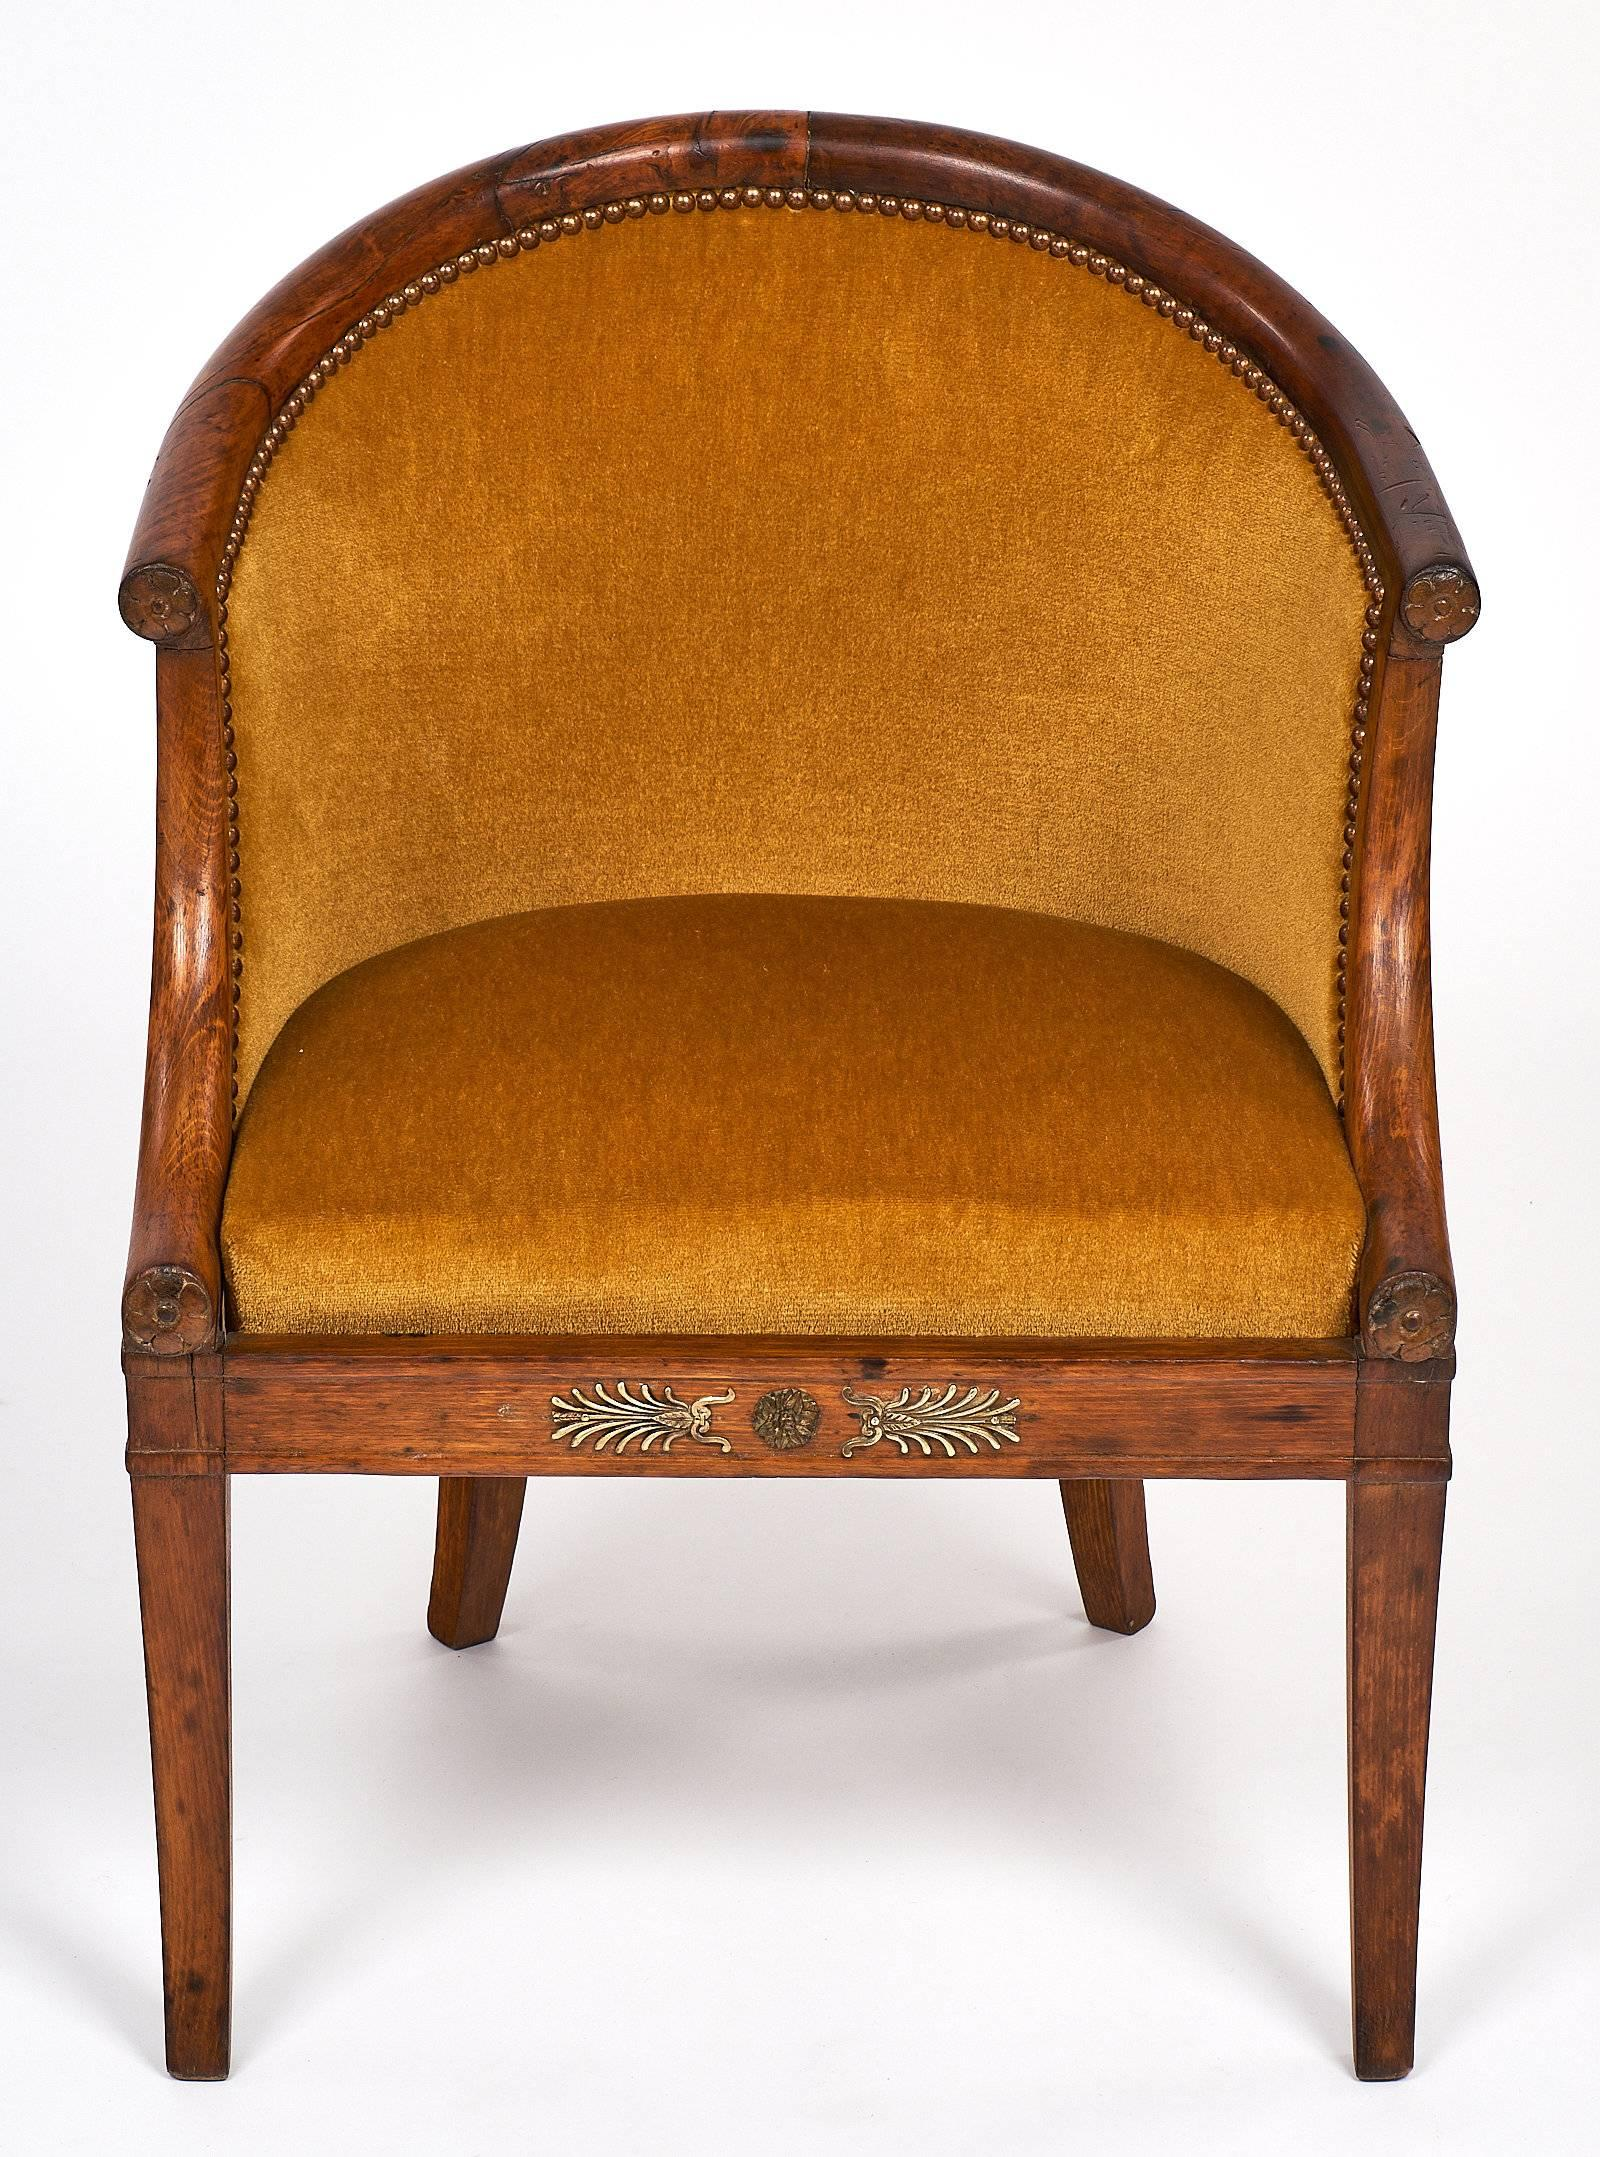 French Antique Empire Style Barrel Chairs At 1stdibs